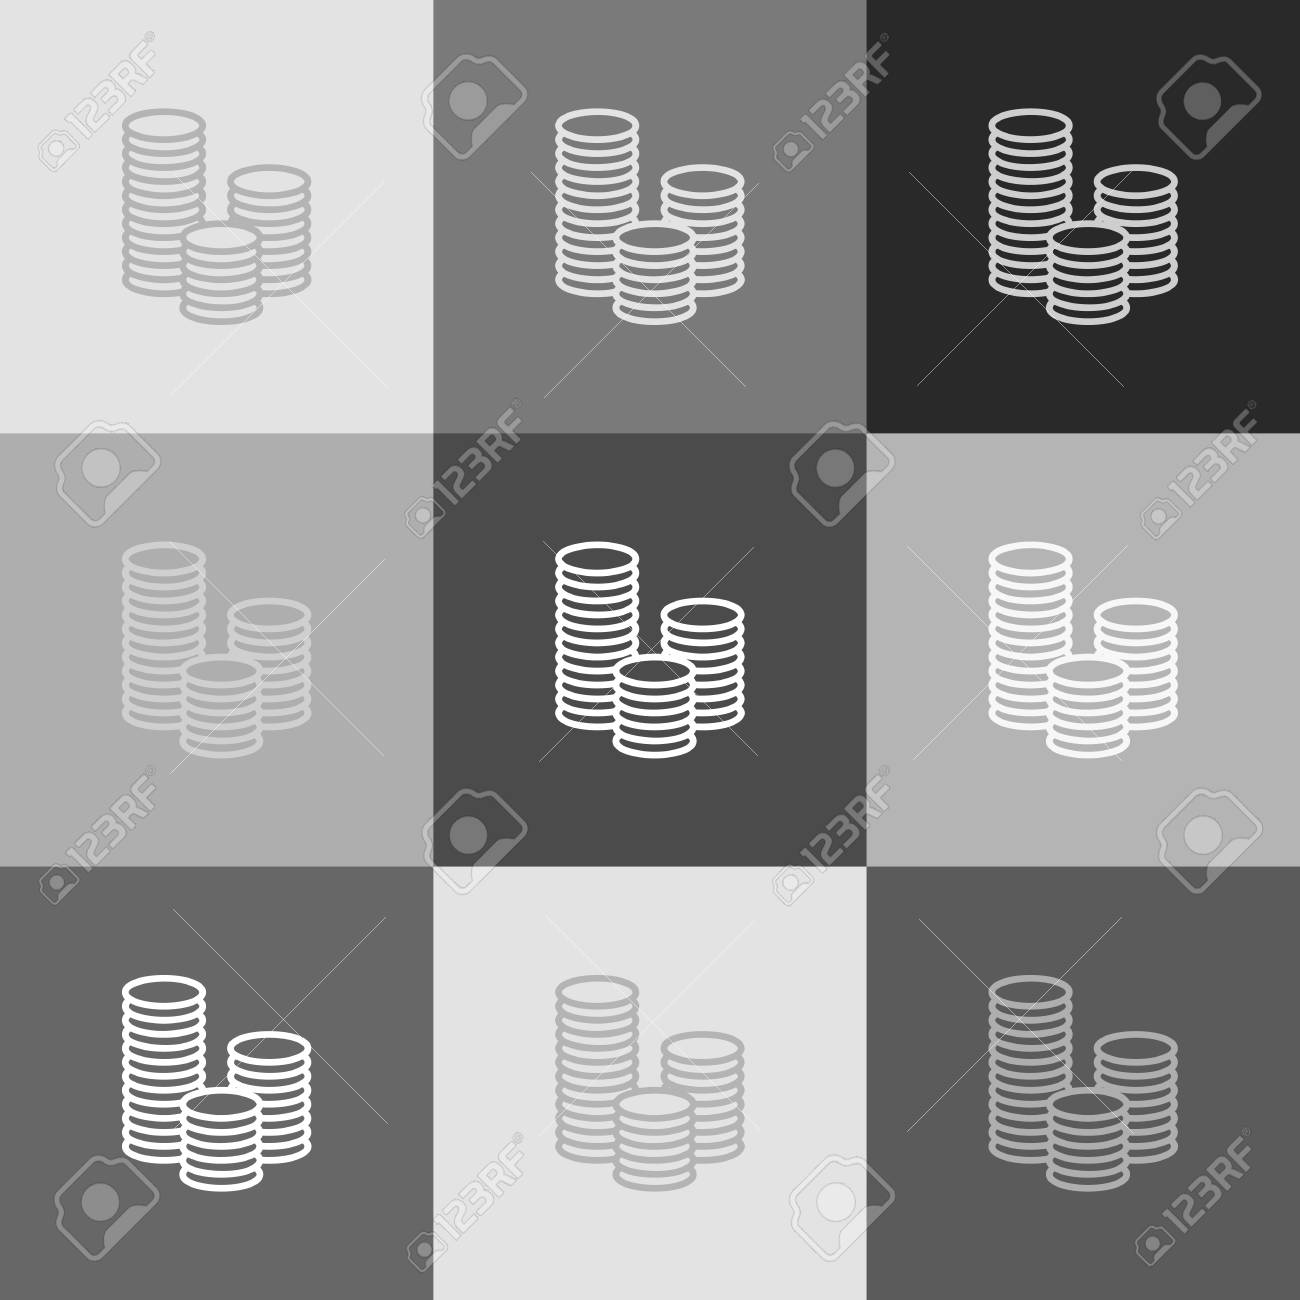 Money sign illustration. Vector. Grayscale version of Popart-style icon.